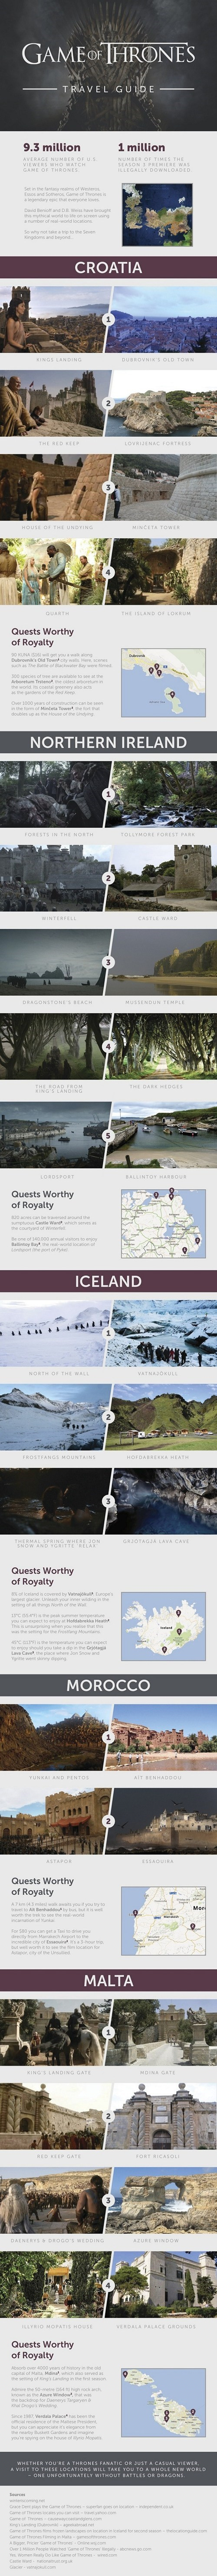 The Game of Thrones Travel Guide: Vacation is Coming